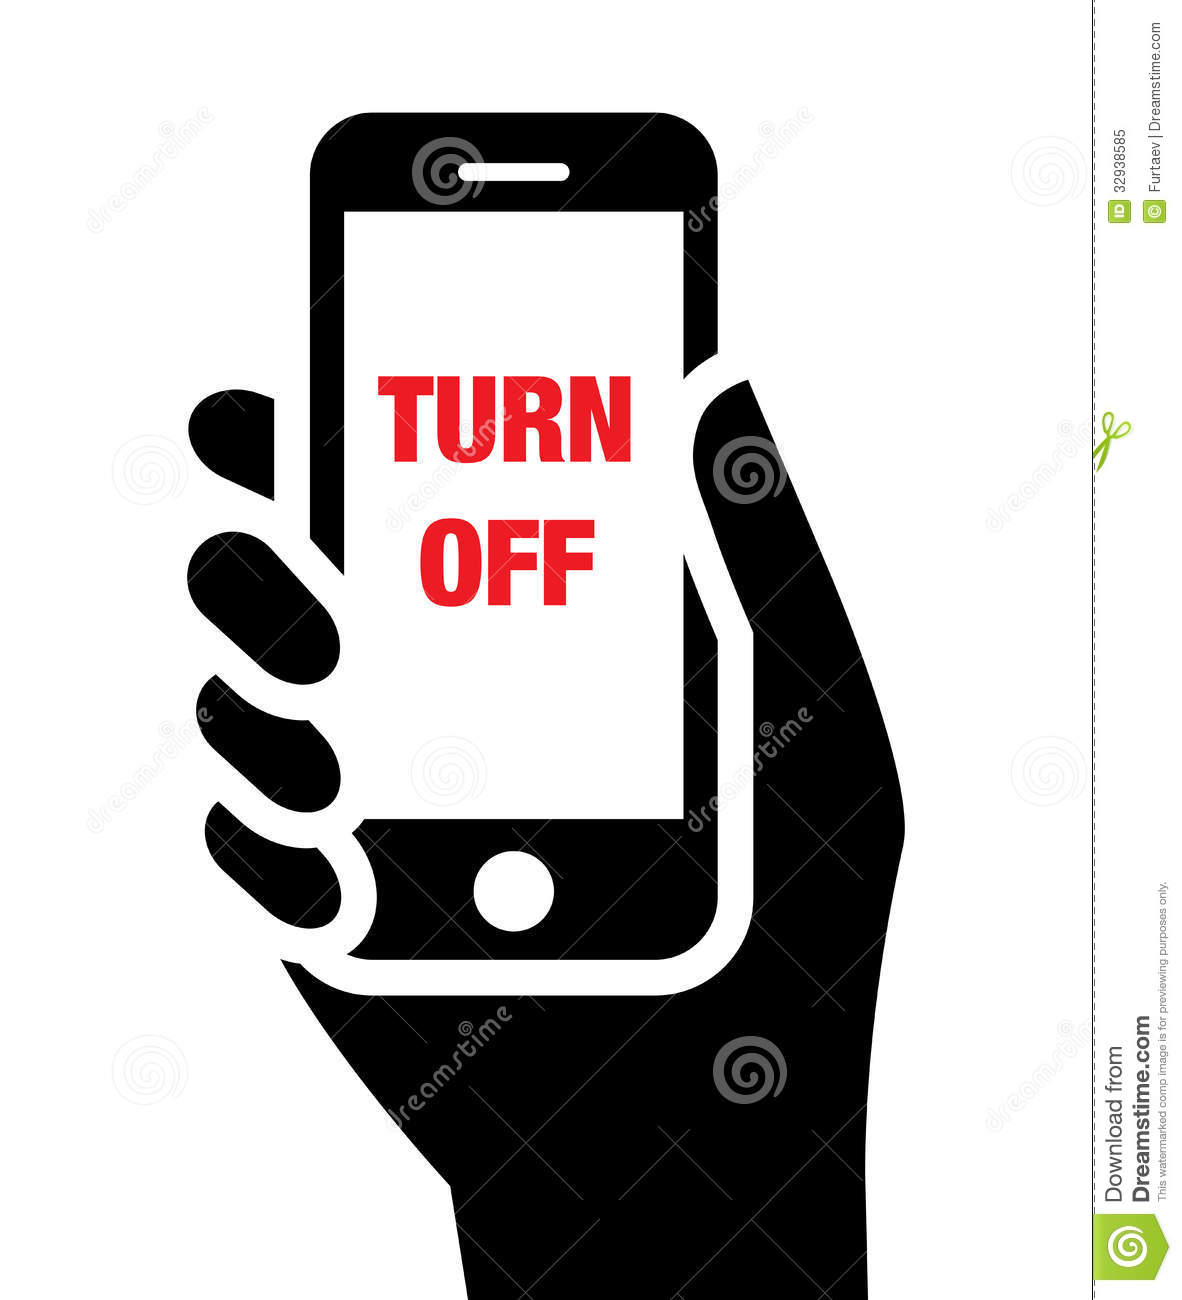 Turn Off Mobile Phones Icon Royalty Free Stock Photo   Image  32938585